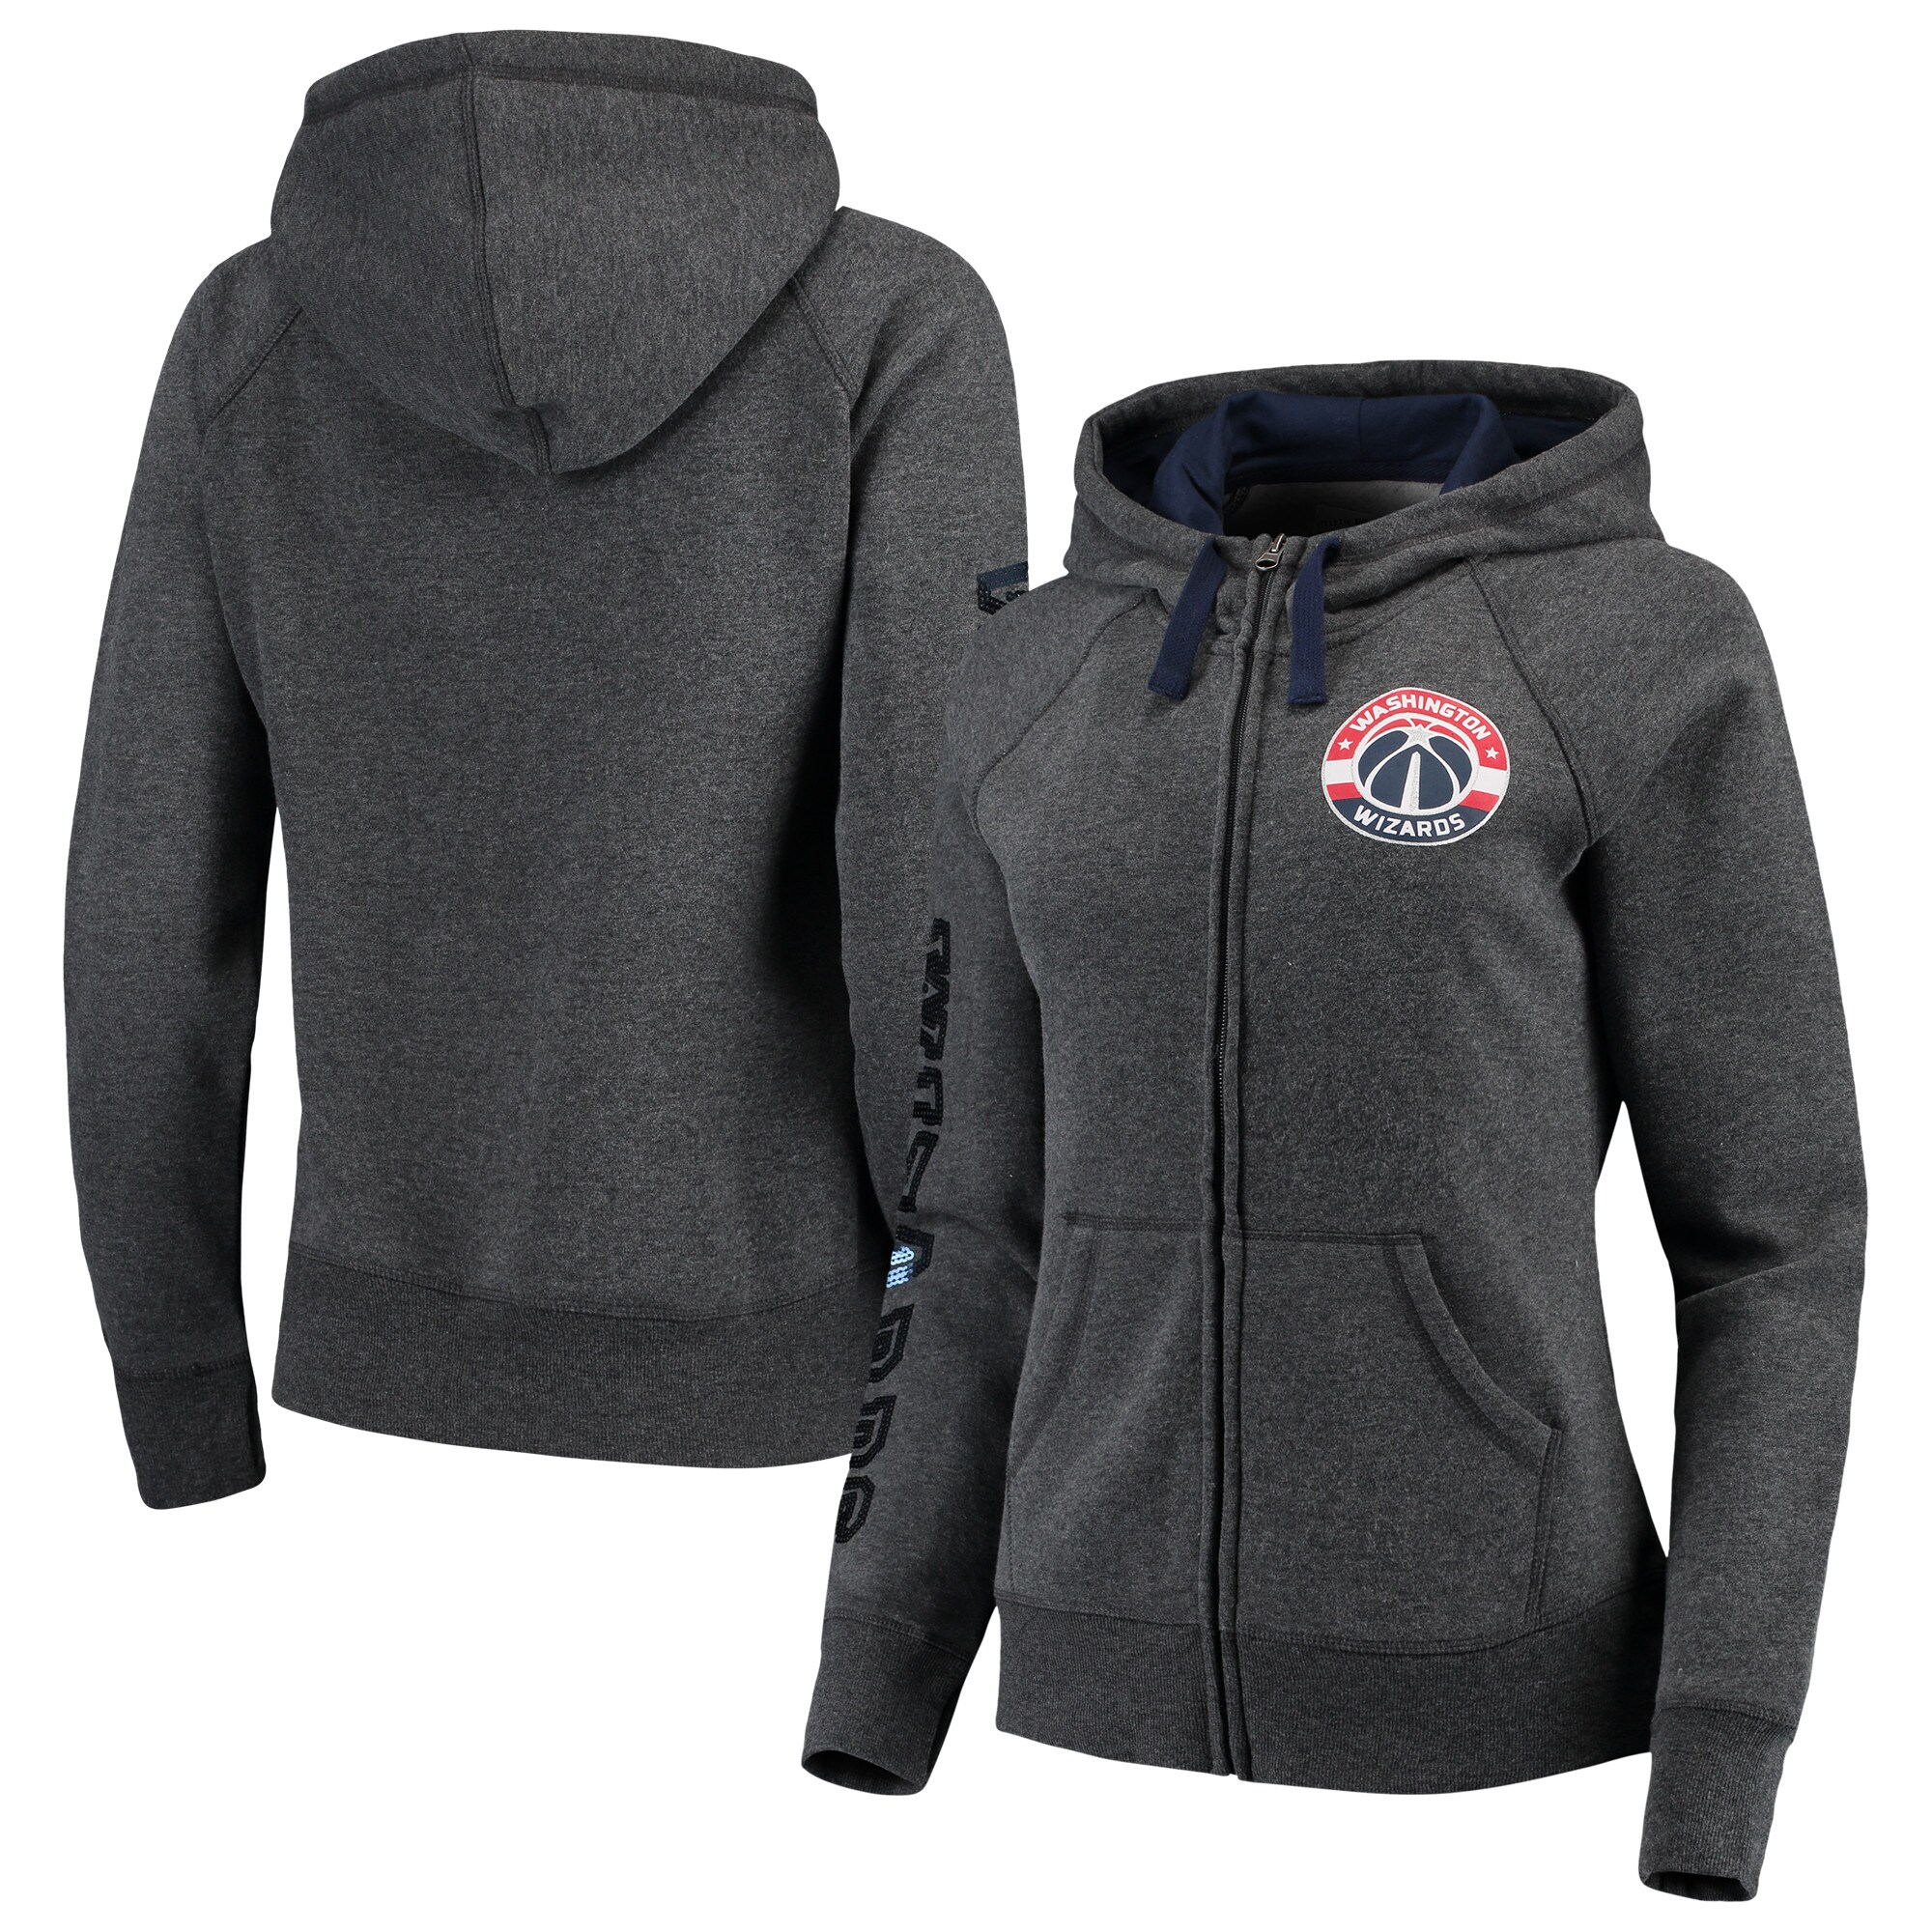 Washington Wizards G-III 4Her by Carl Banks Women's Playoff Suede Fleece Full-Zip Jacket - Charcoal/Navy